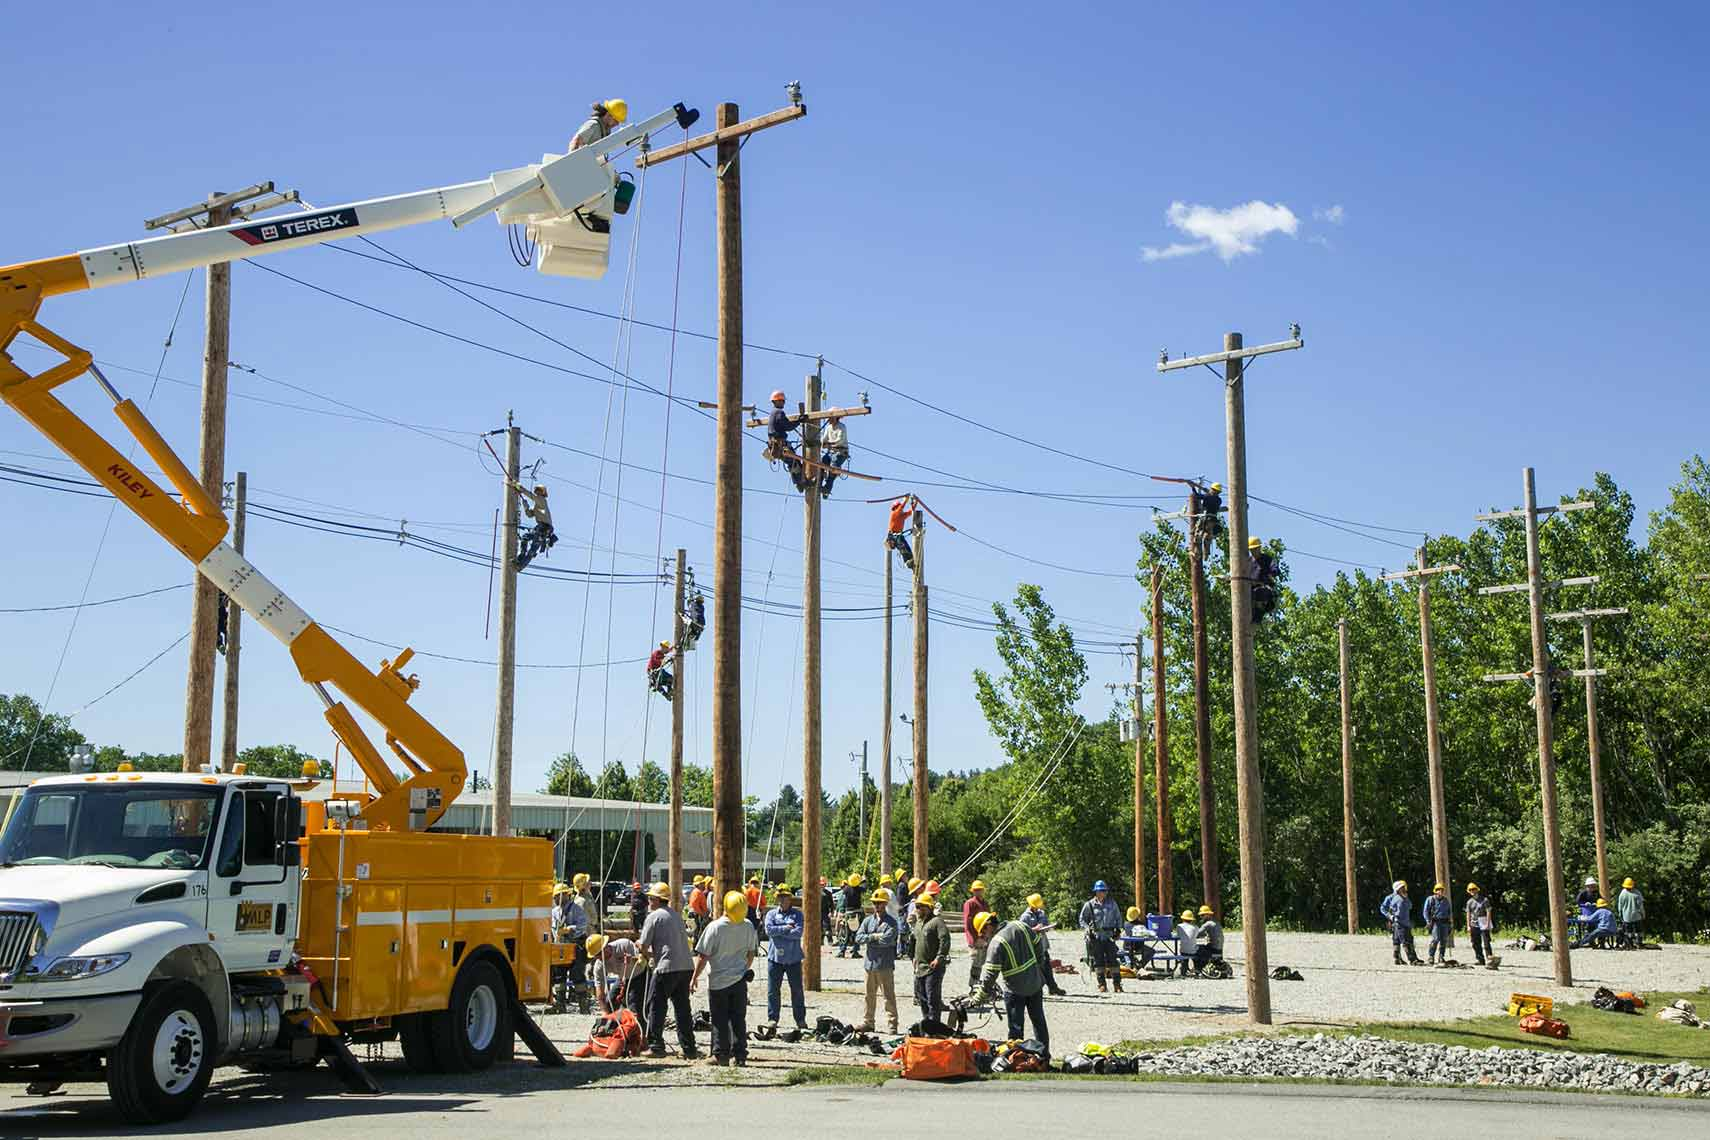 008-Northeast-Public-Power-Association-Linemen-with-Cherry-Picker